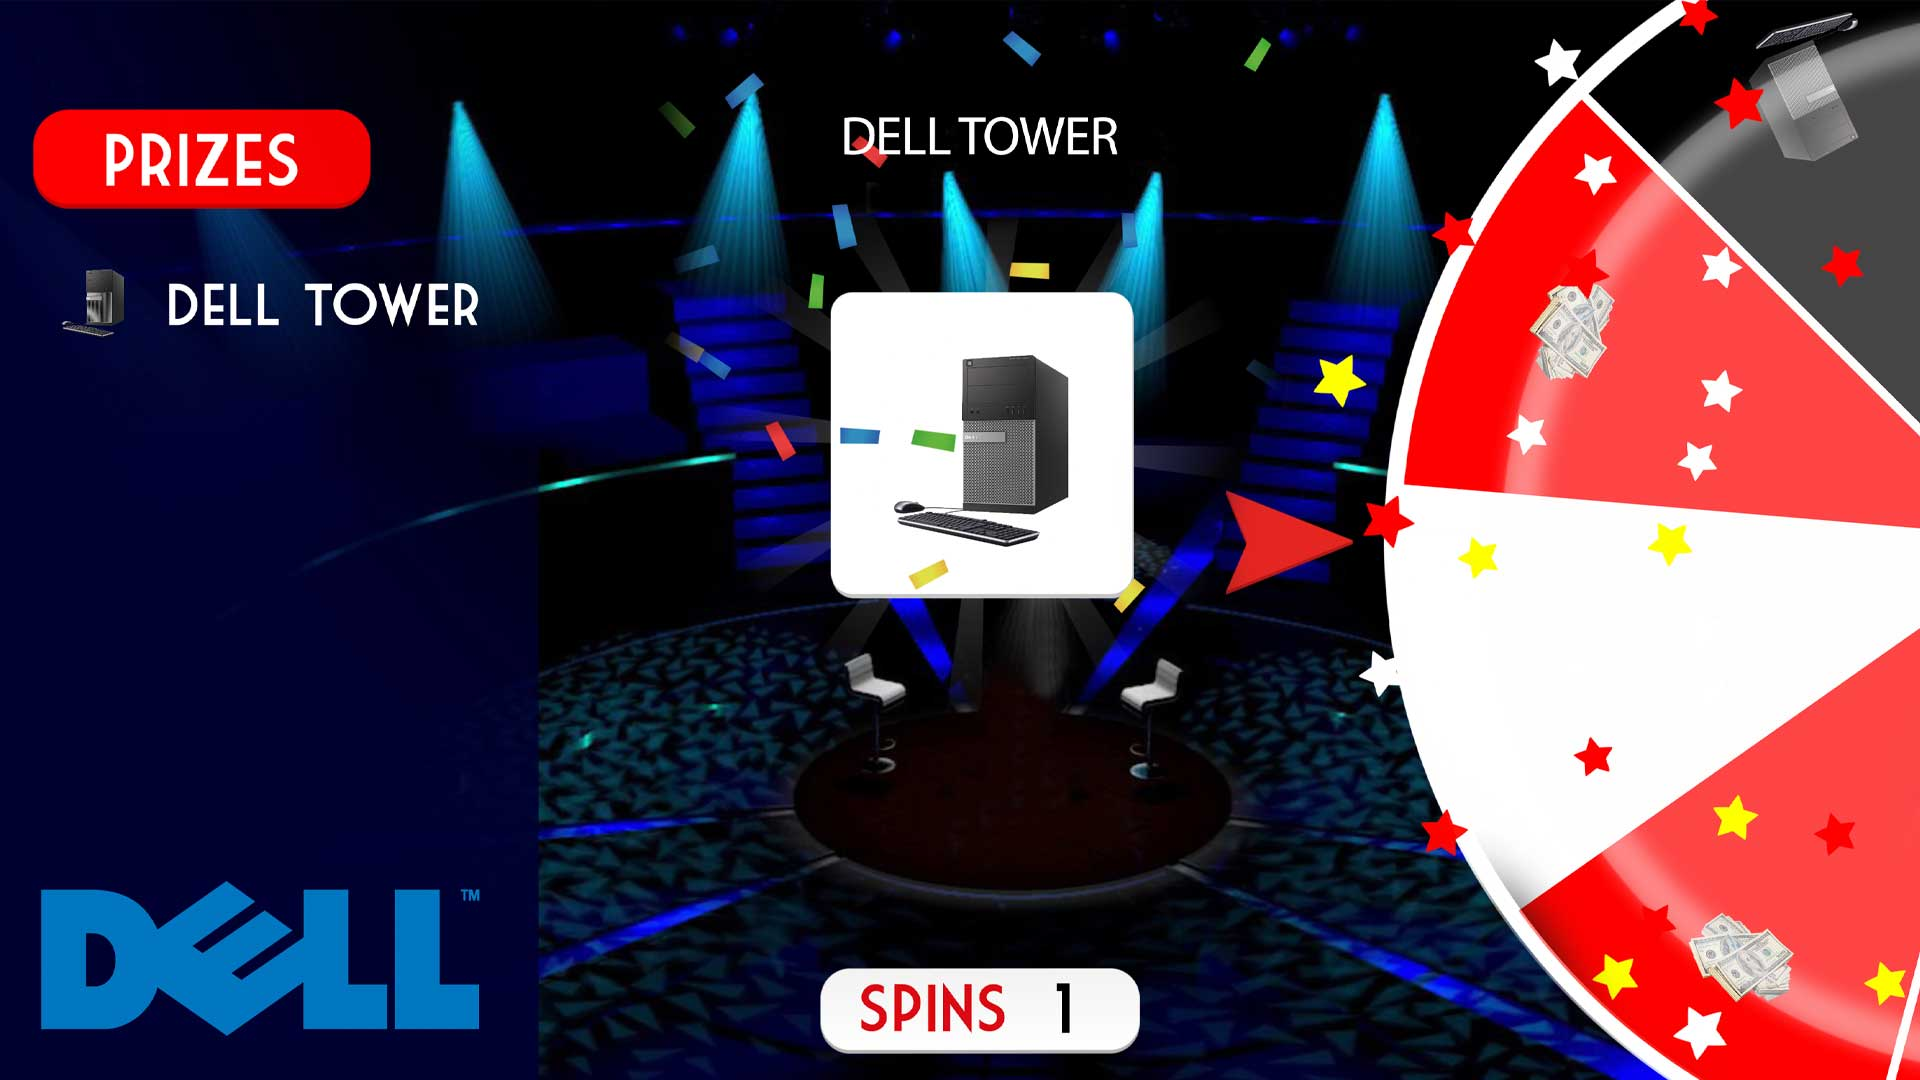 Dell Theme | Spin to Win